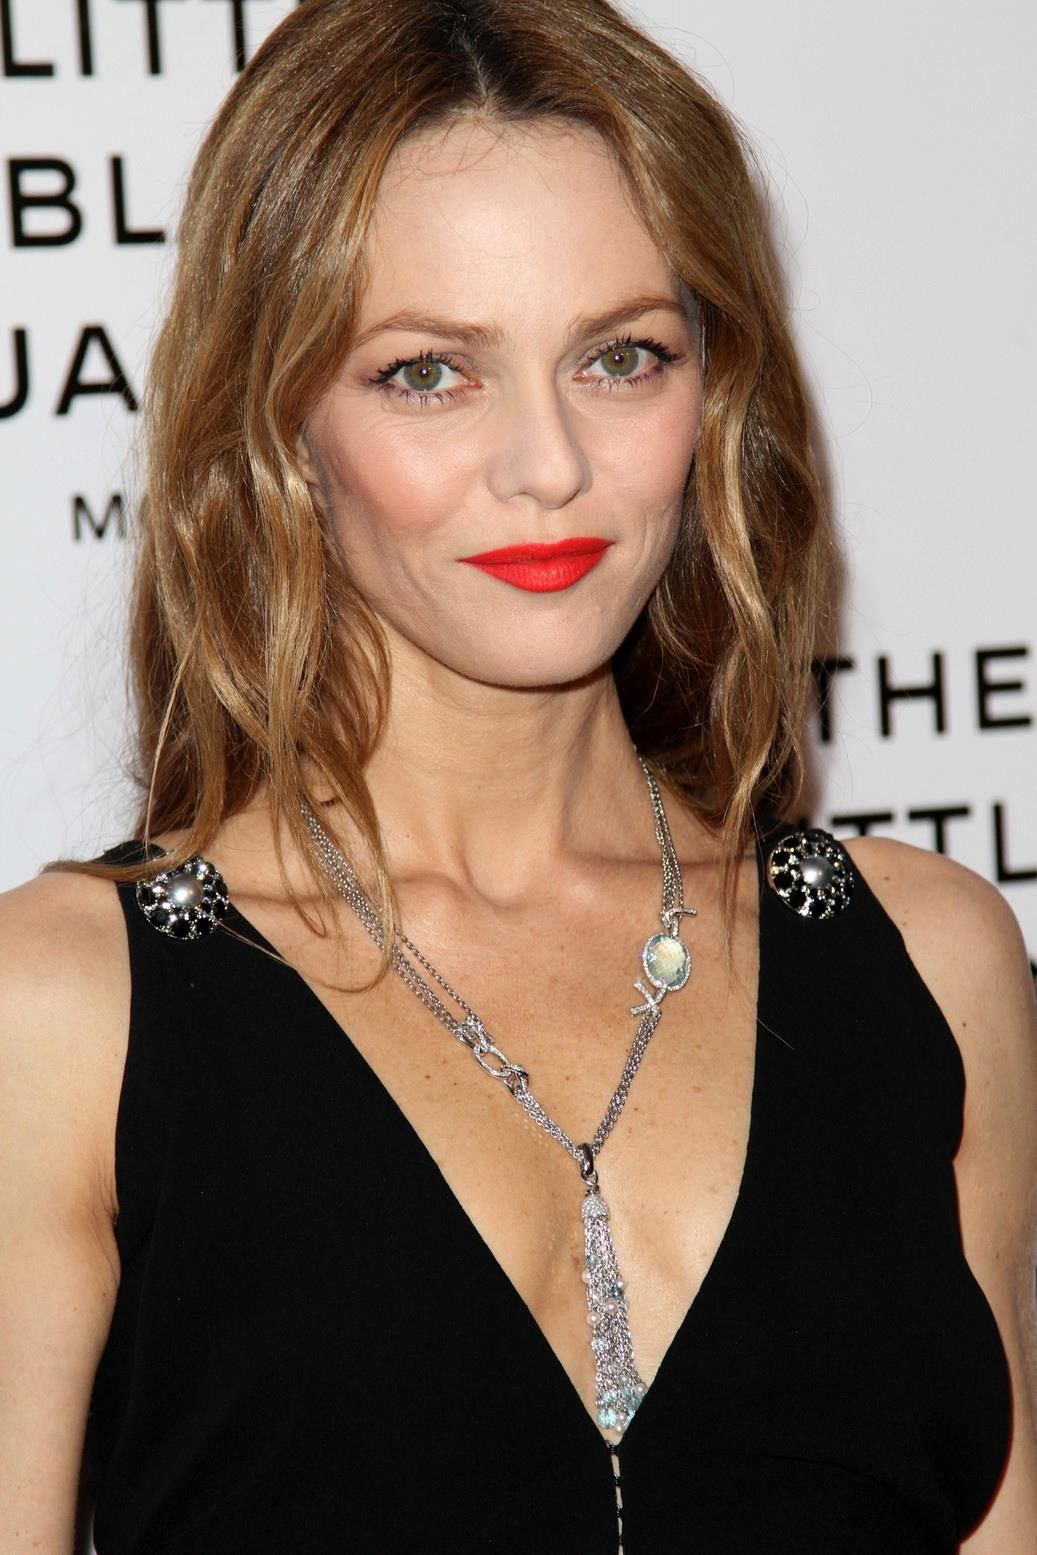 Vanessa Paradis images Vanessa HD wallpaper and background photos ... Vanessa Paradis